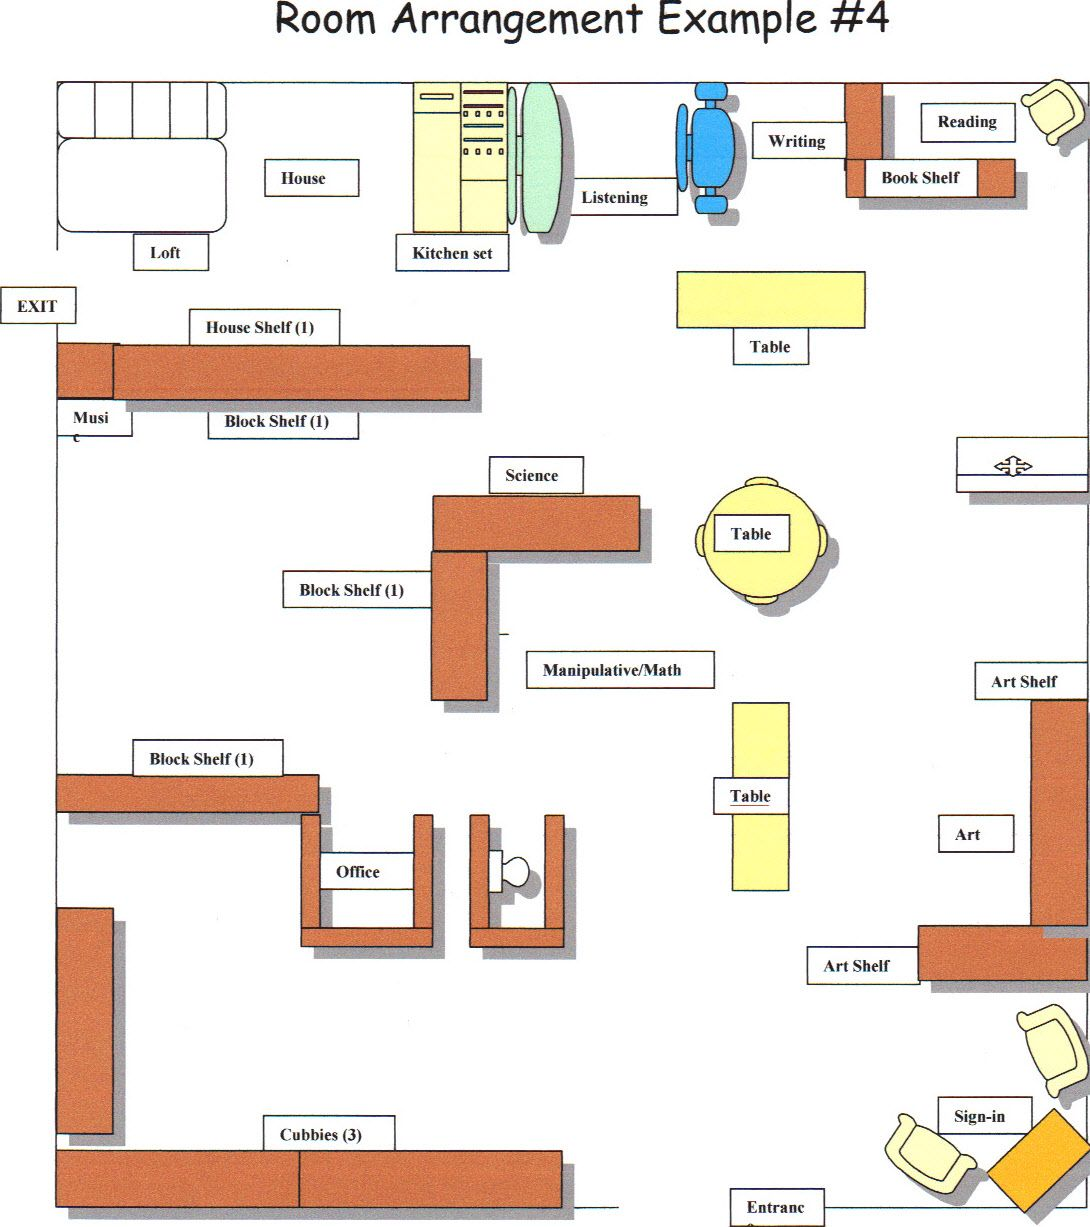 Scanned Room Arrangement 1090 1227 Classroom